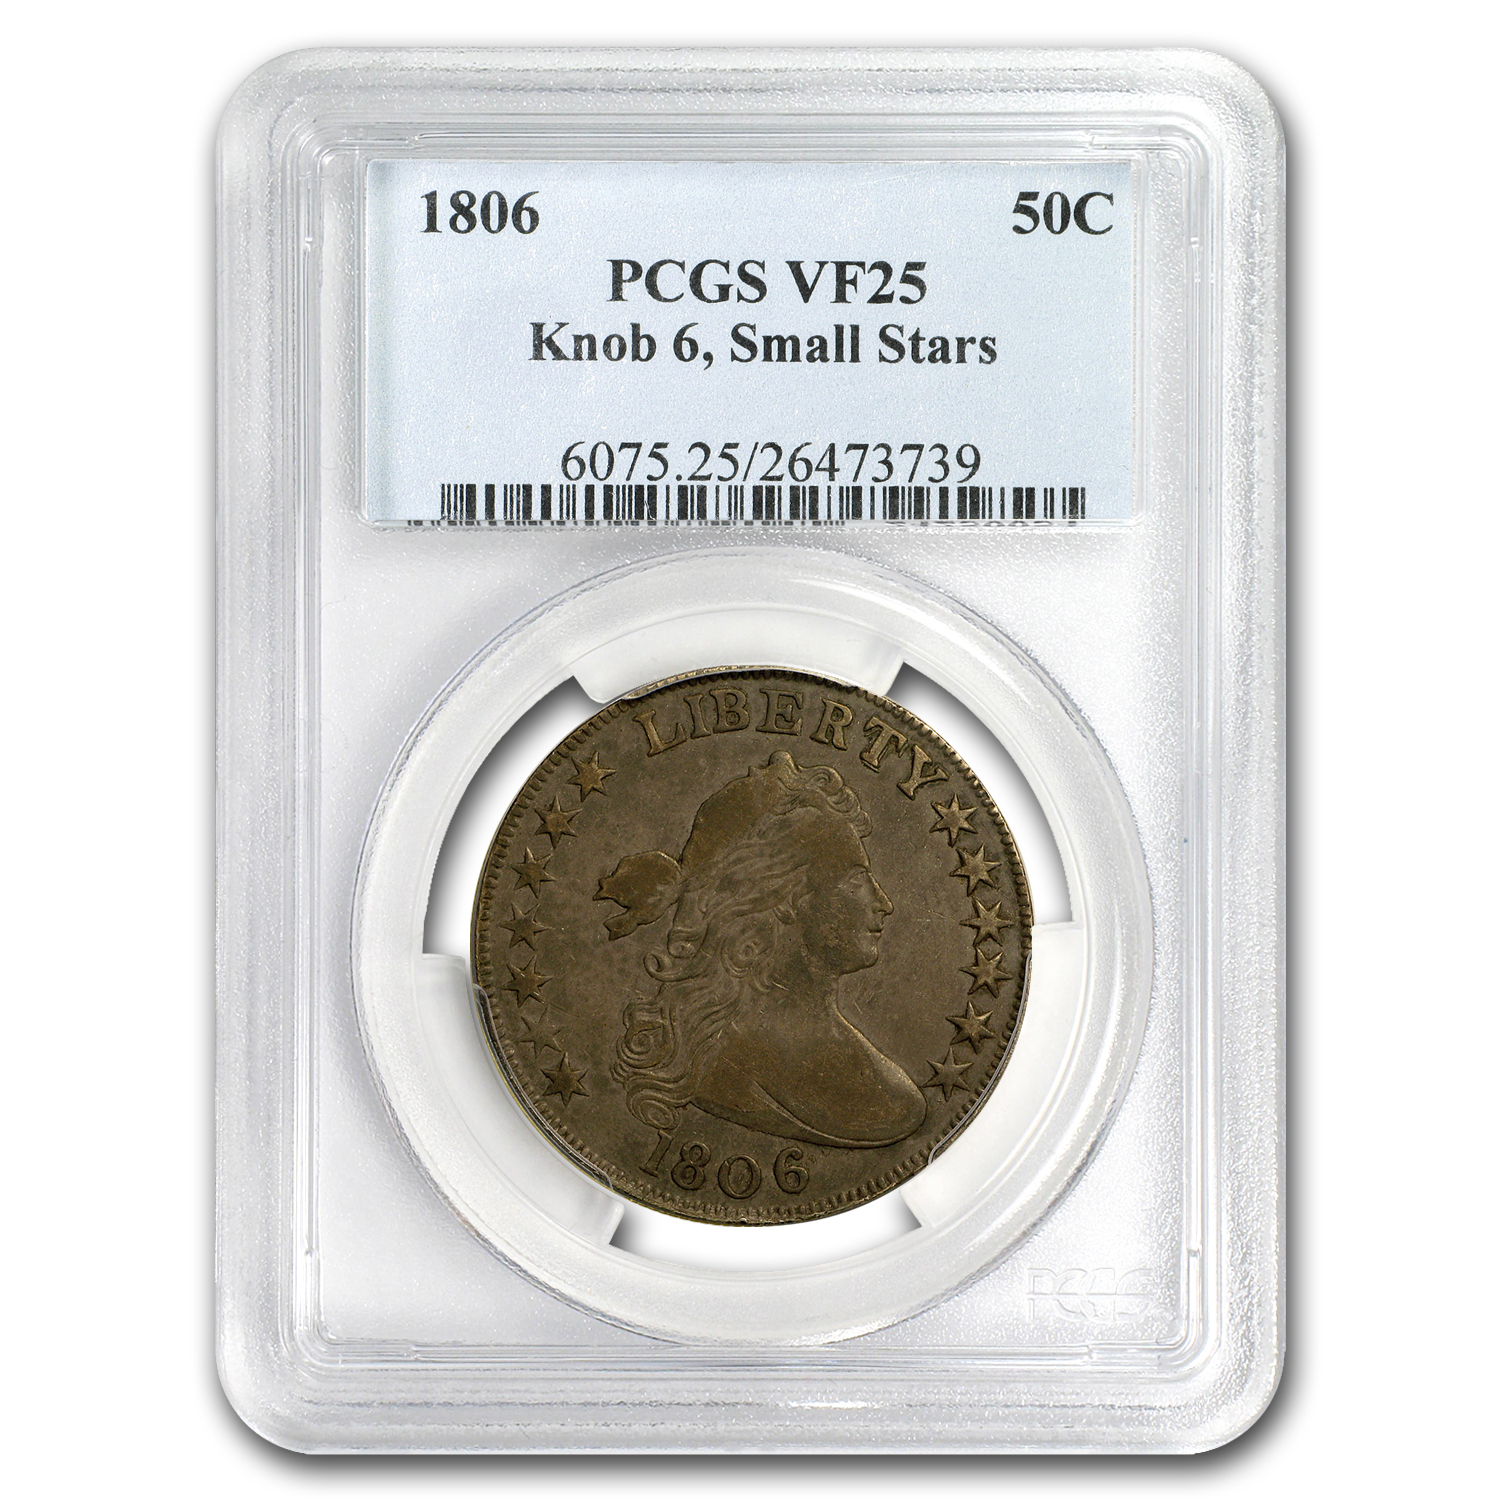 1806 Draped Bust Half Dollar Small 6, Small Stars VF-25 PCGS